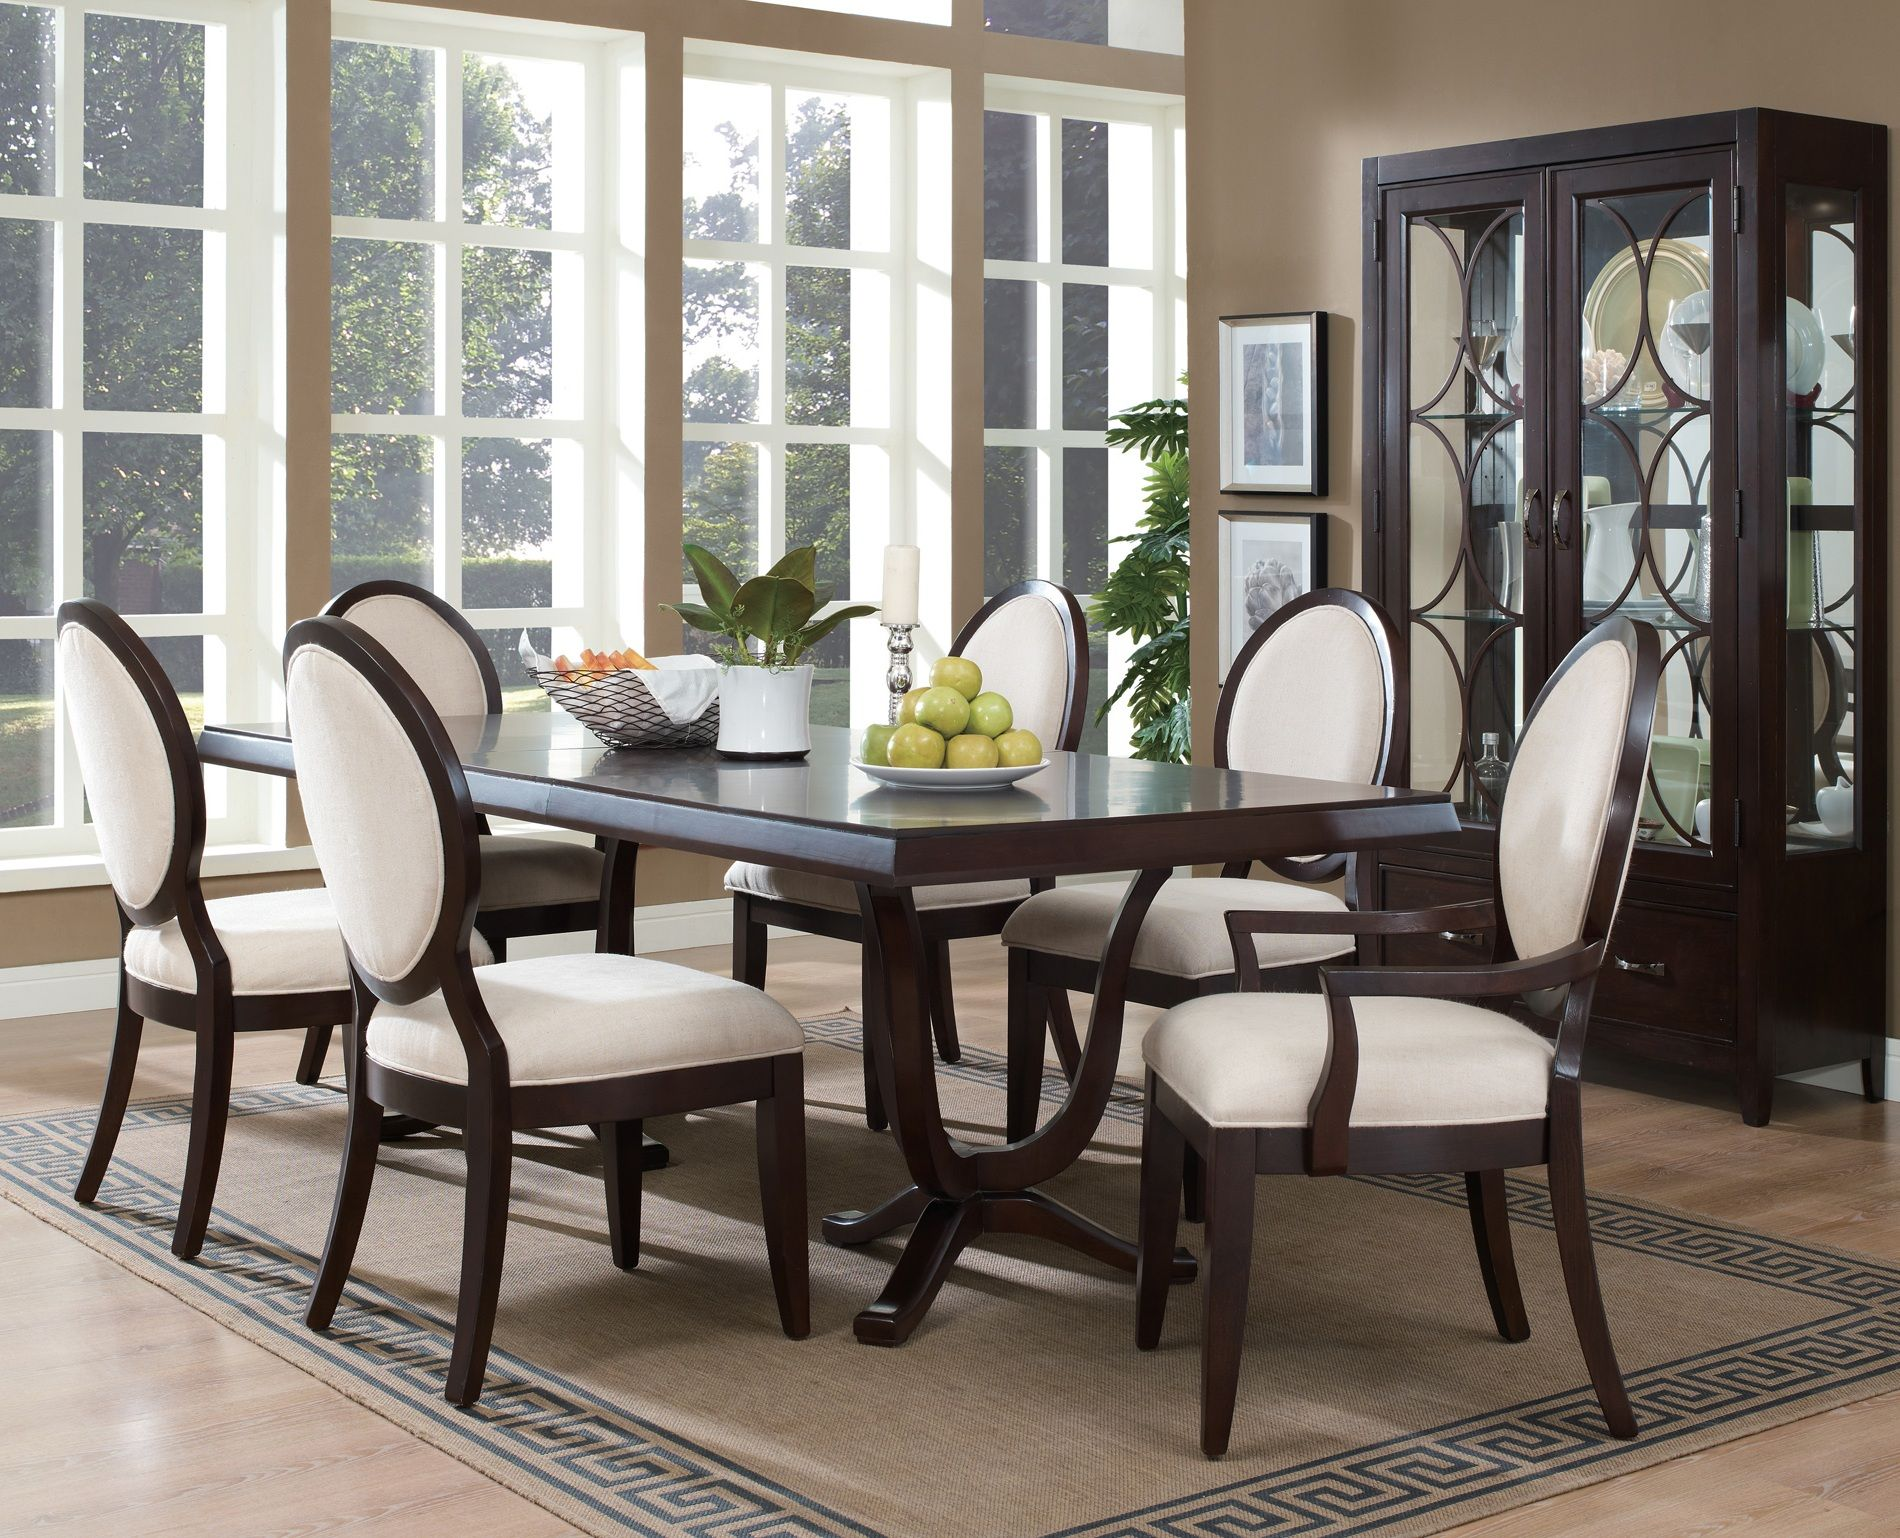 Dcor For Formal Dining Room Designs